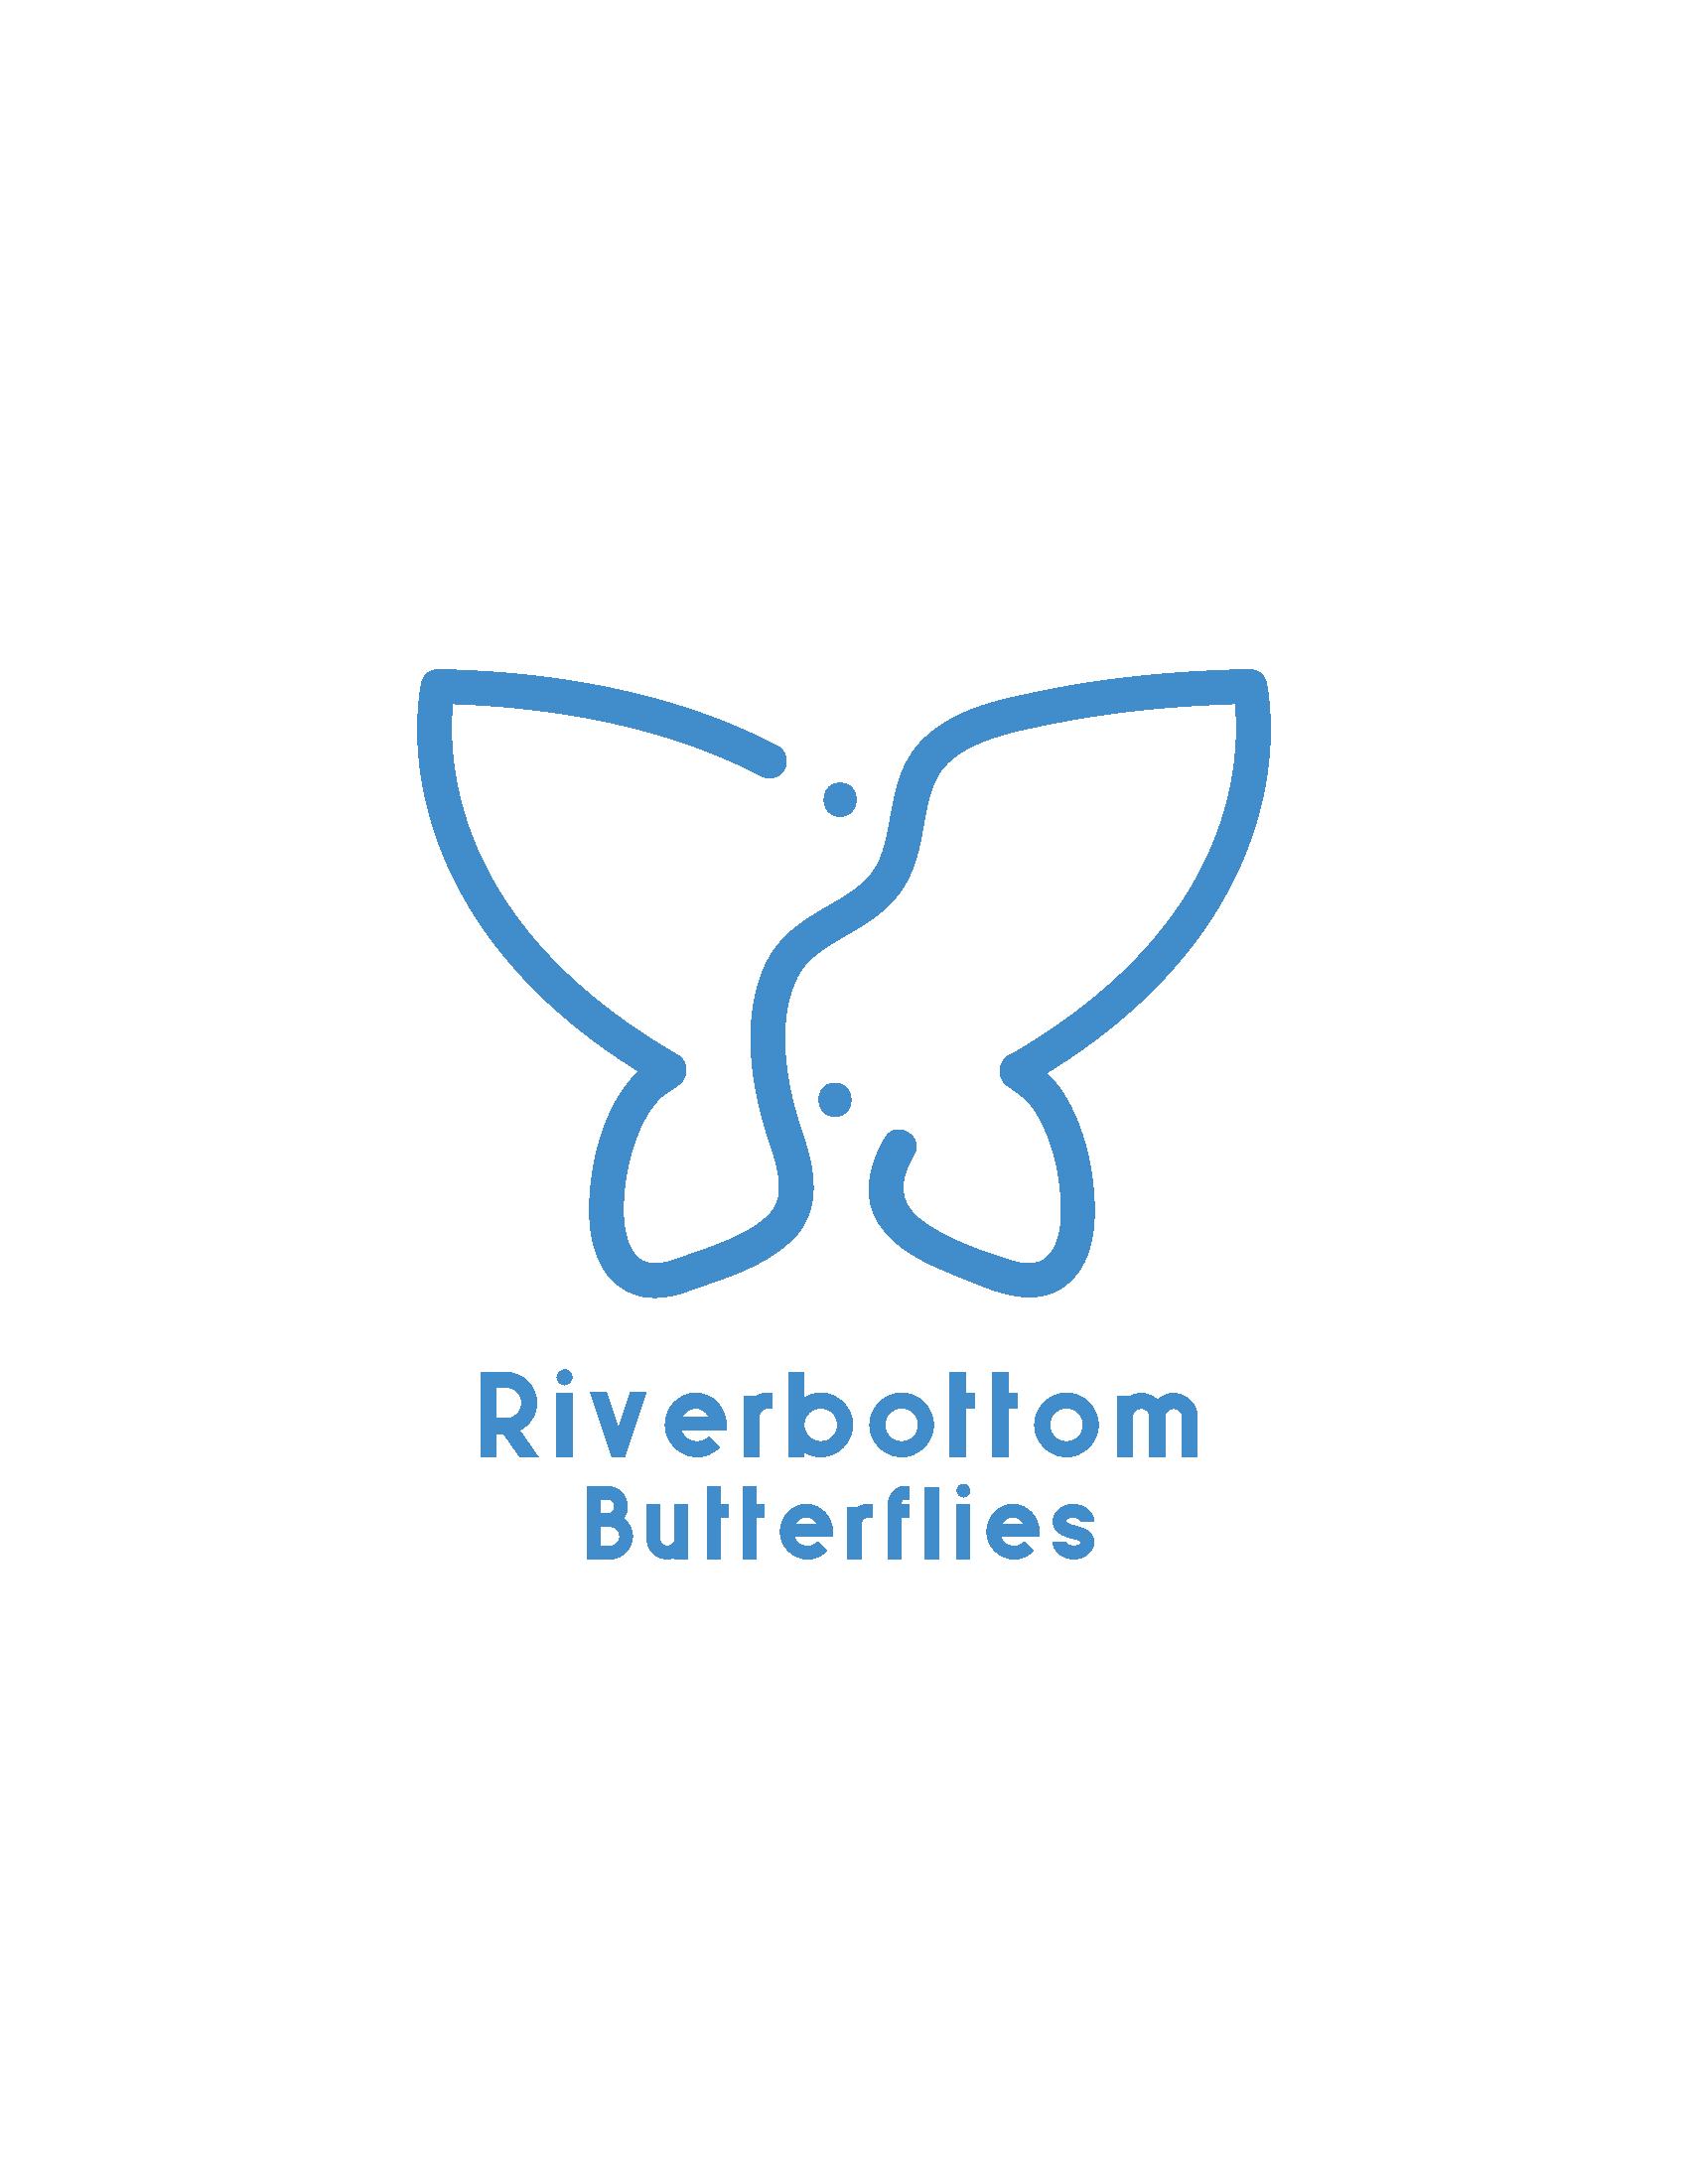 Riverbottom Butterflies